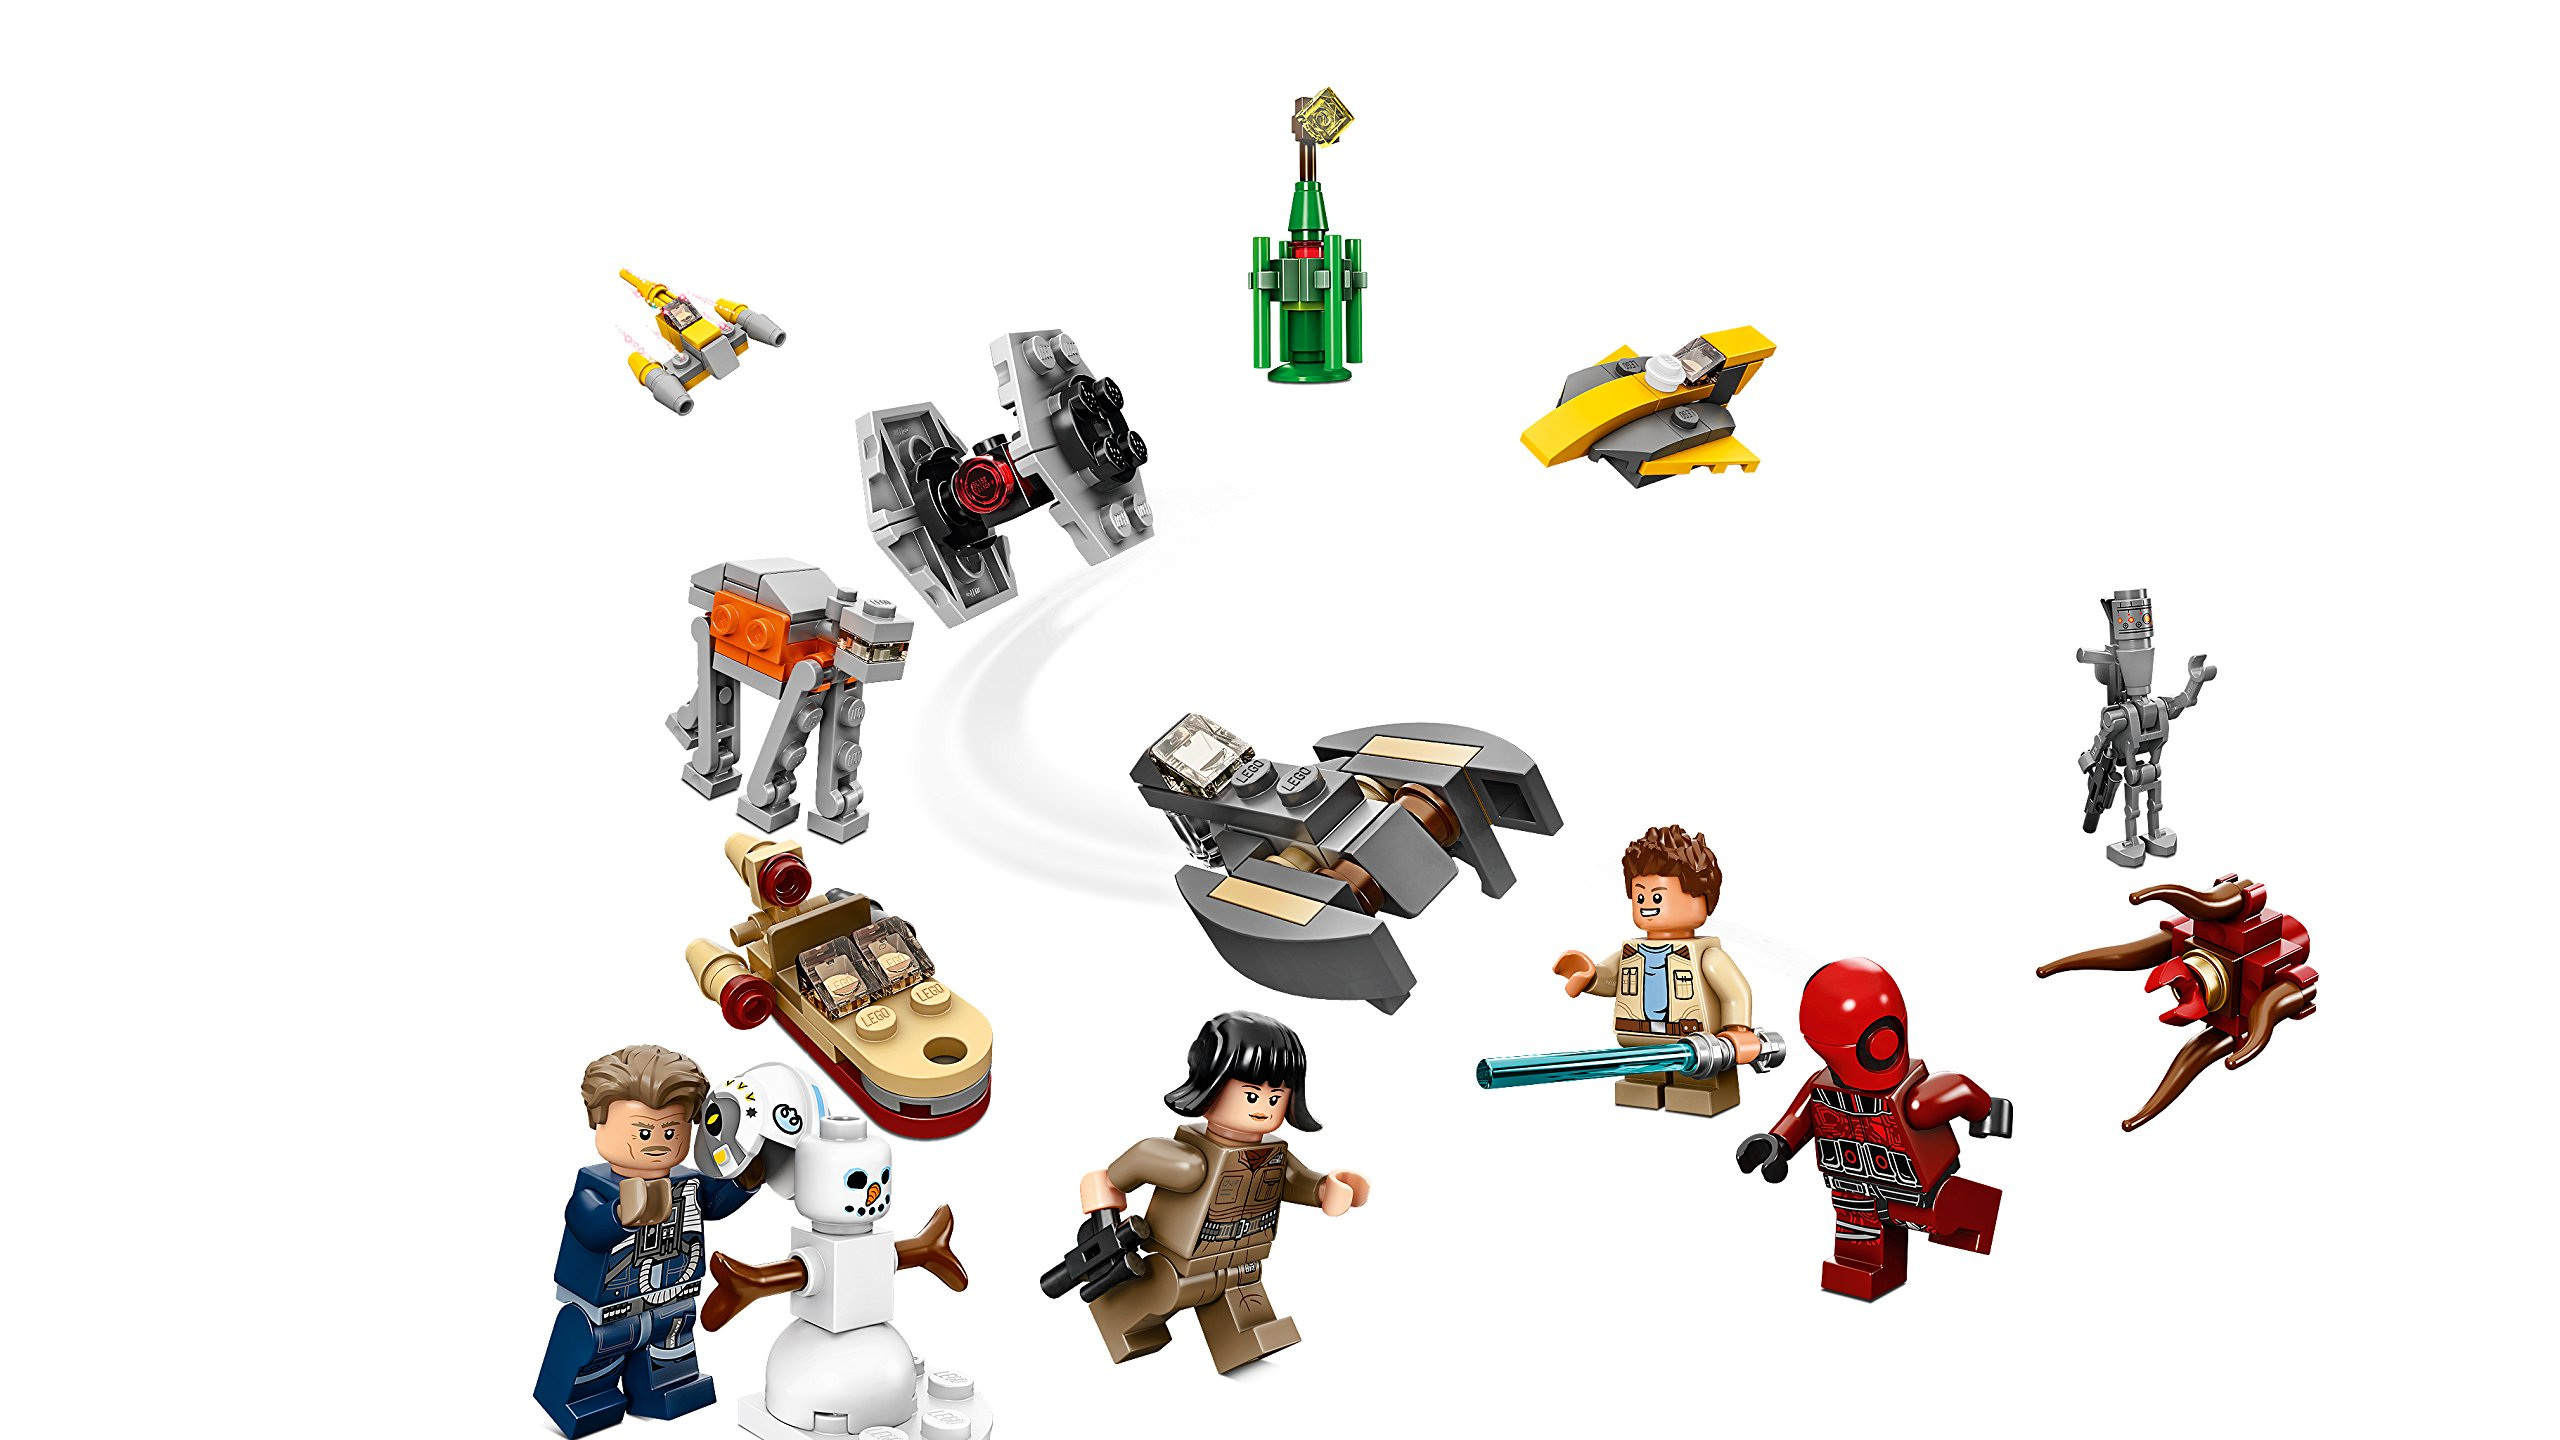 Lego Star Wars Calendario dell'Avvento, 75213 3 spesavip